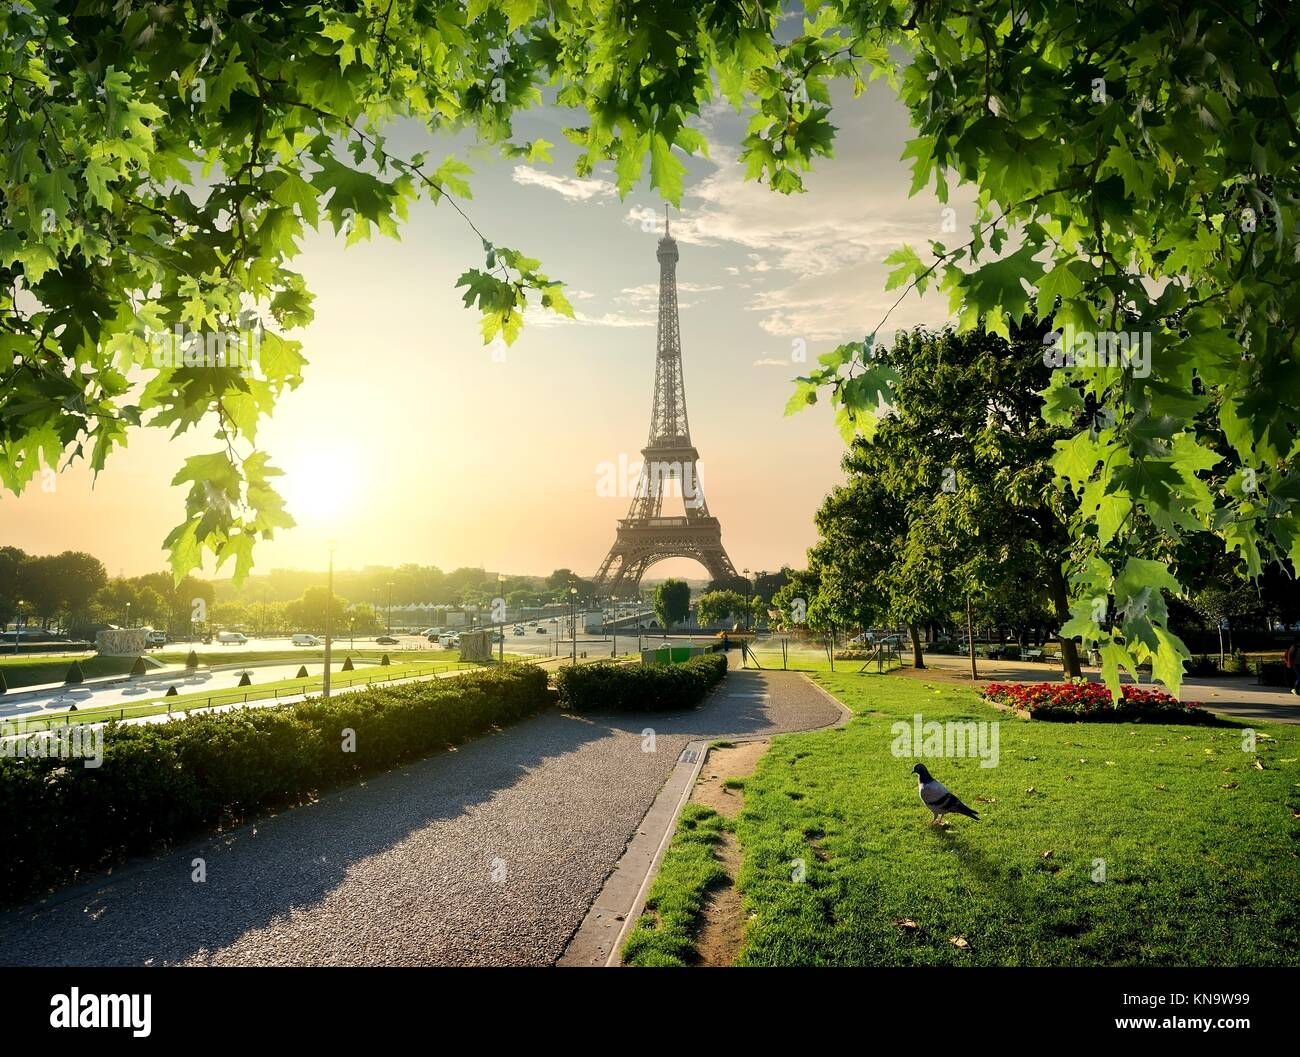 Jardins du Trocadero near Eiffel Tower in Paris, France. - Stock Image